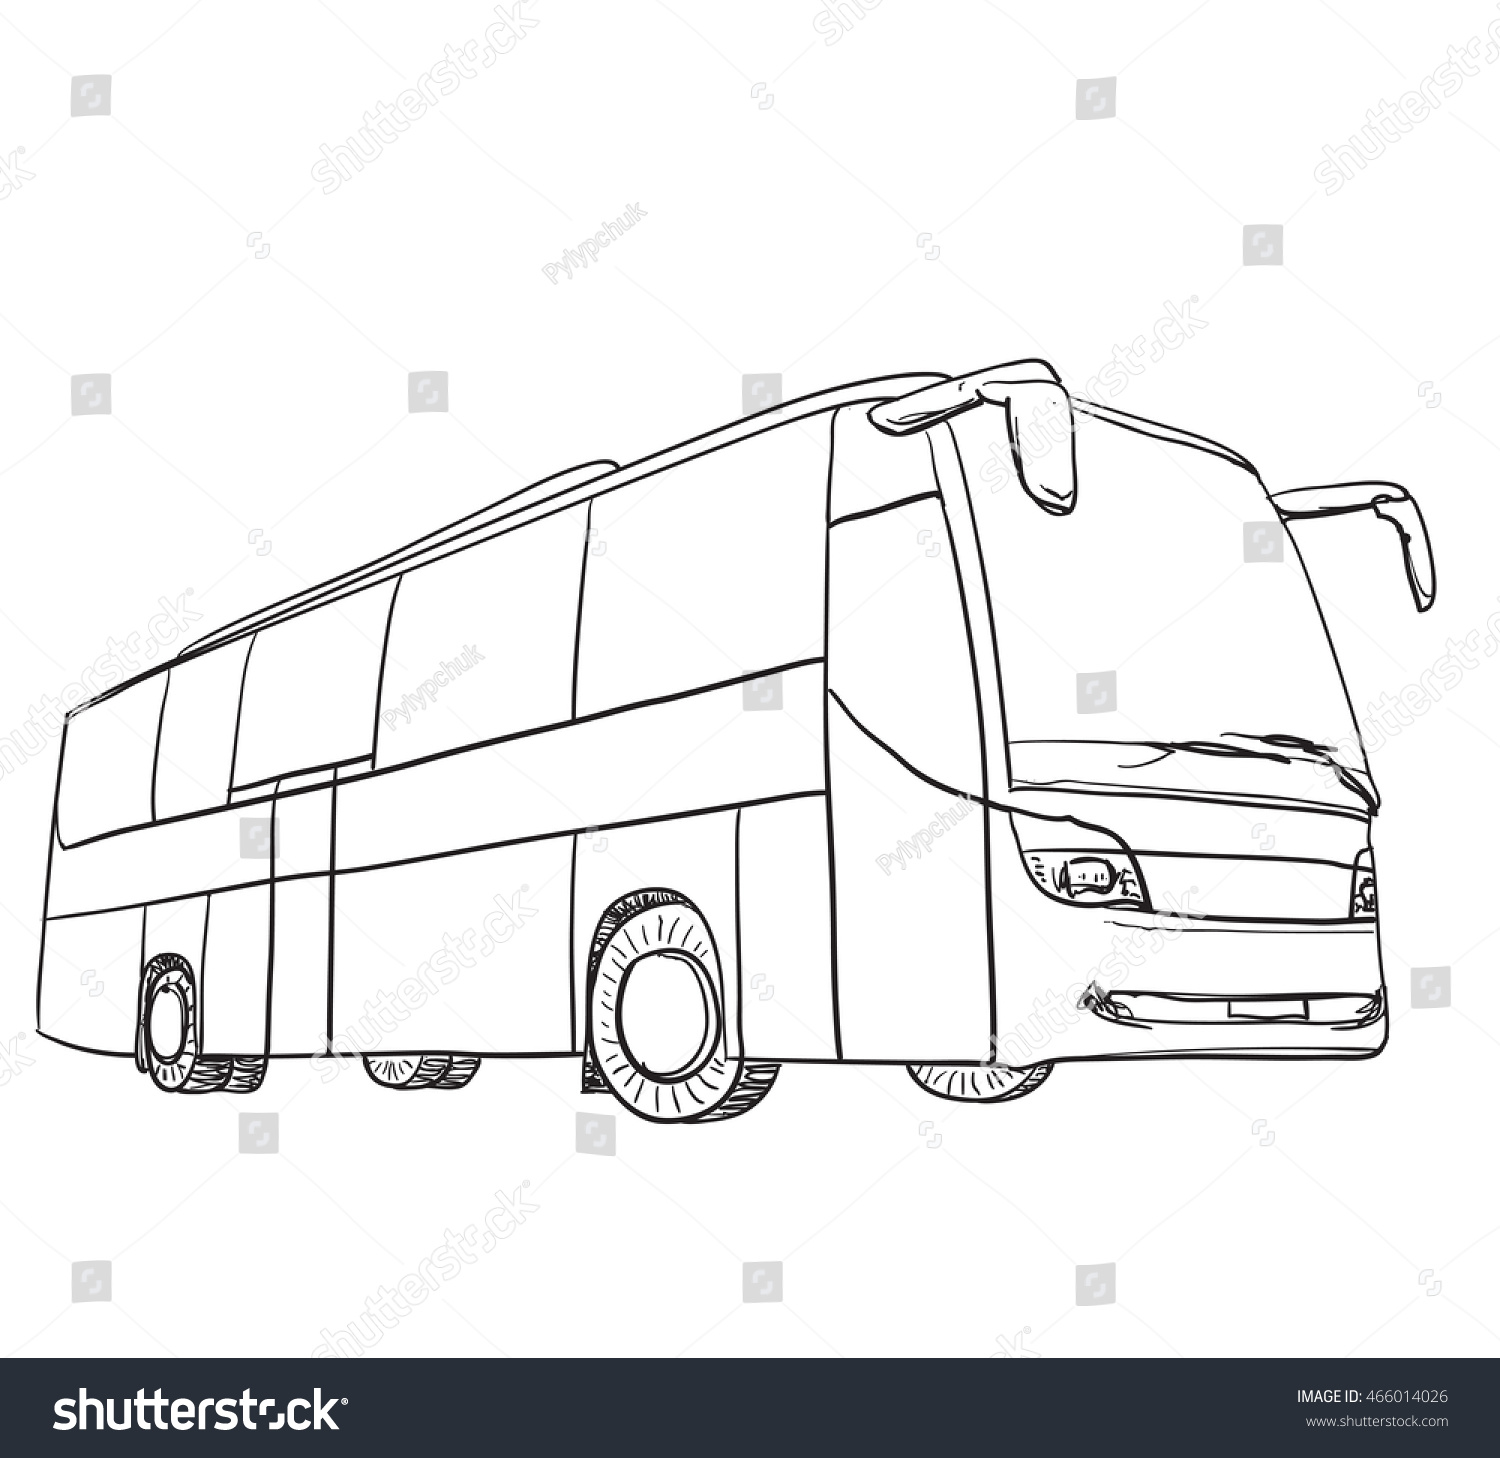 Line Drawing Bus : Hand drawn transport travel bus sketch stock vector